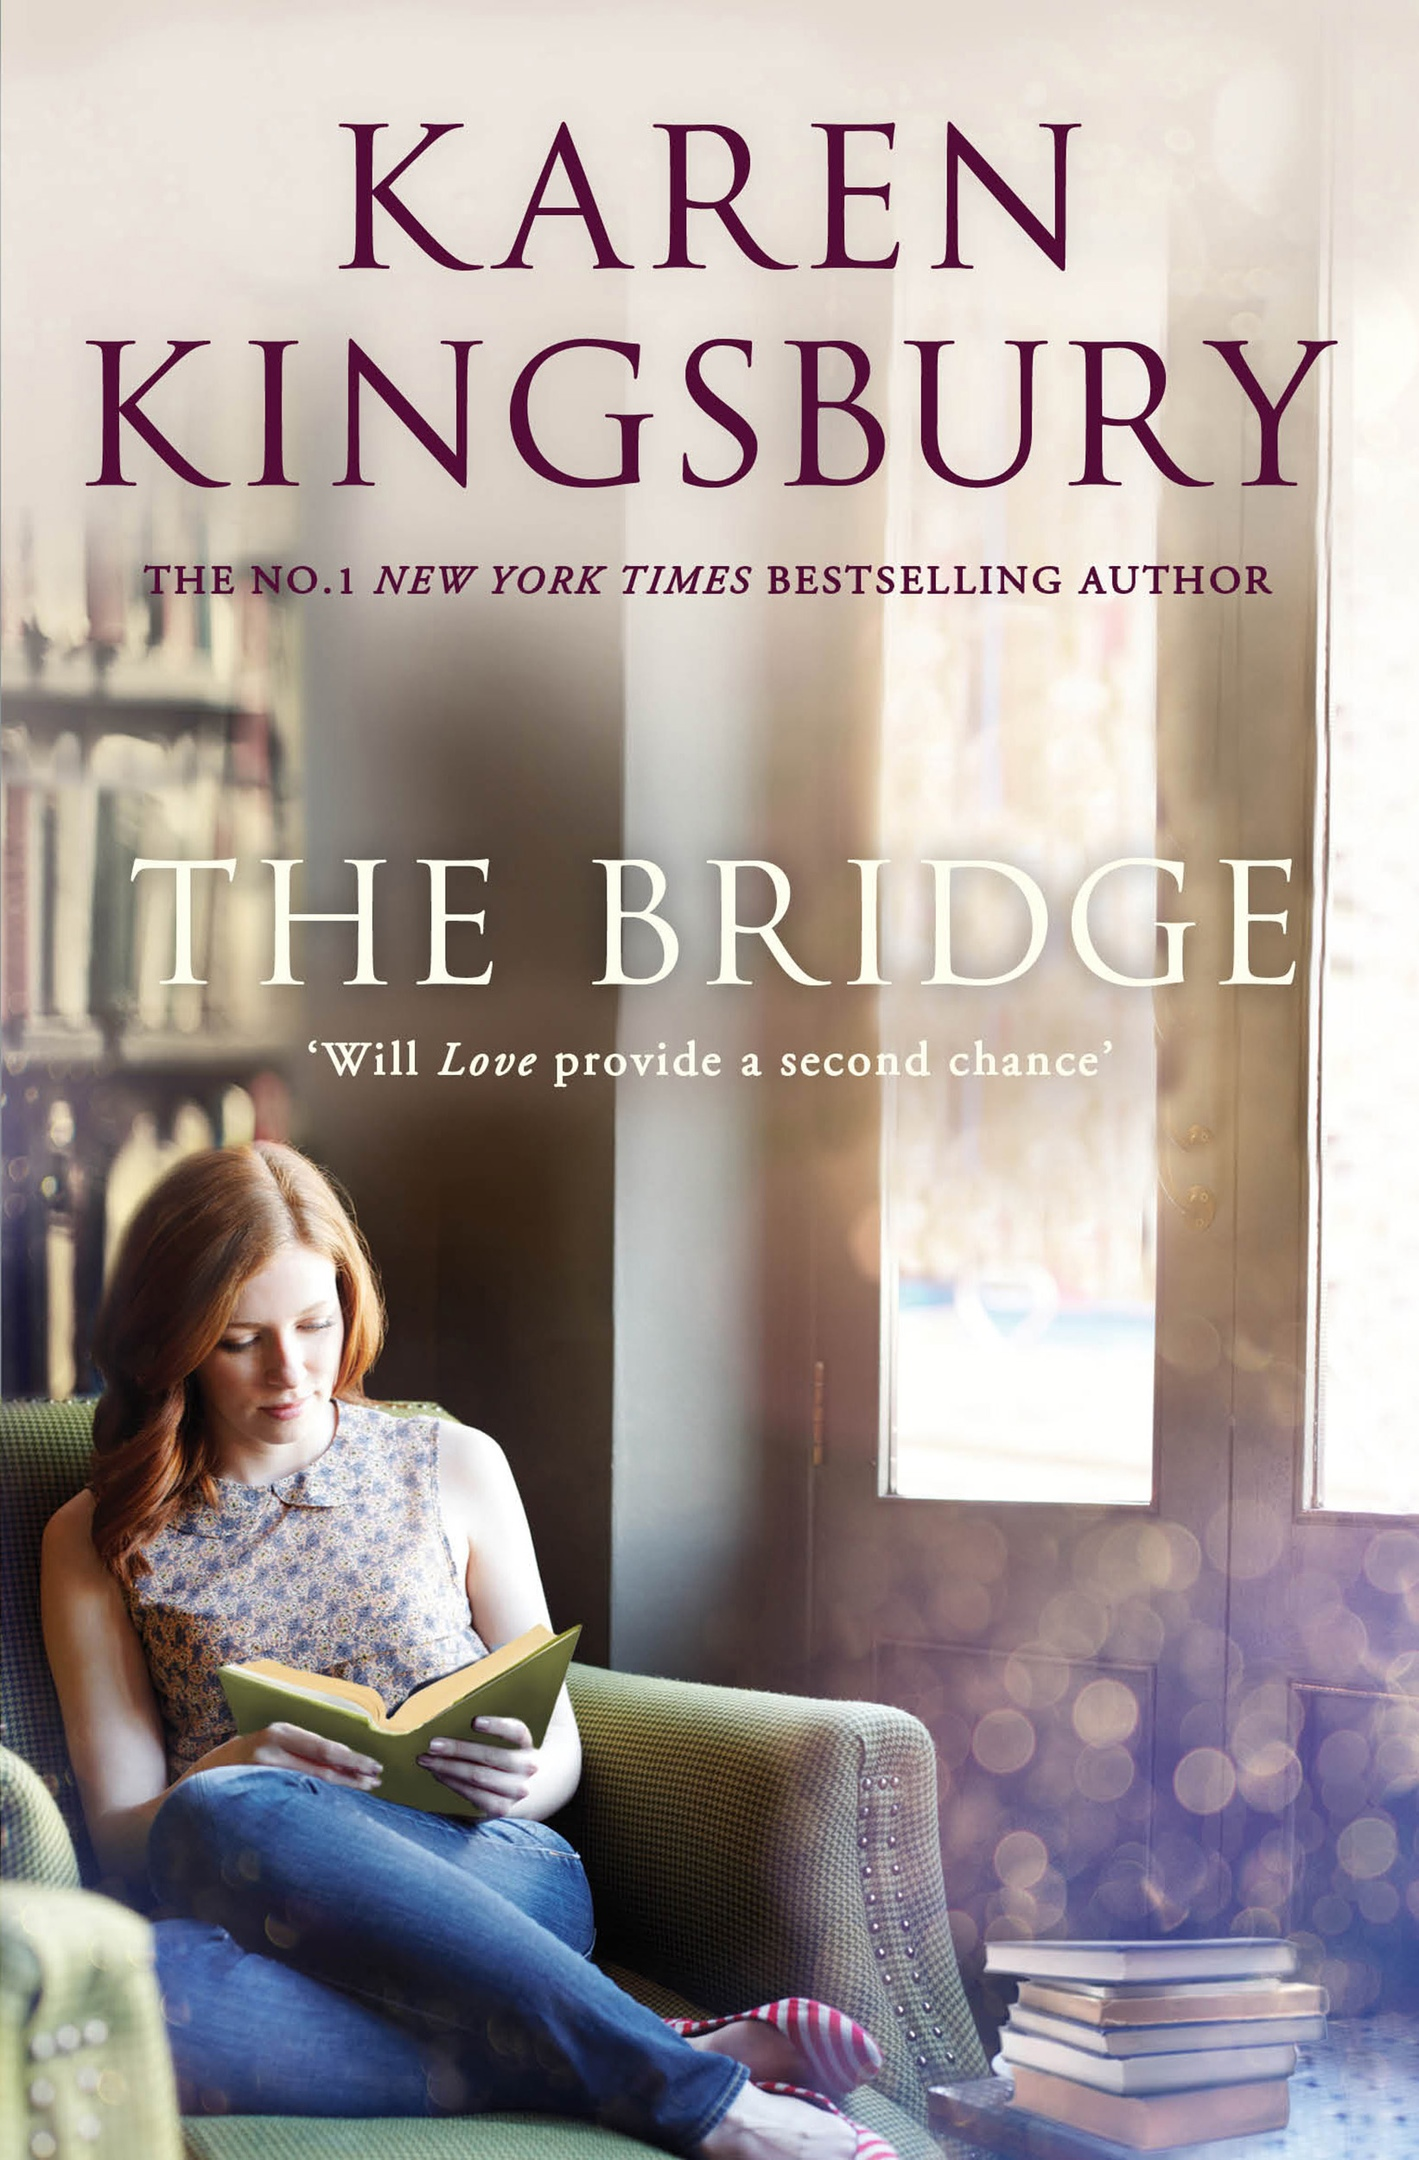 Karen Kingsbury – The Bridge